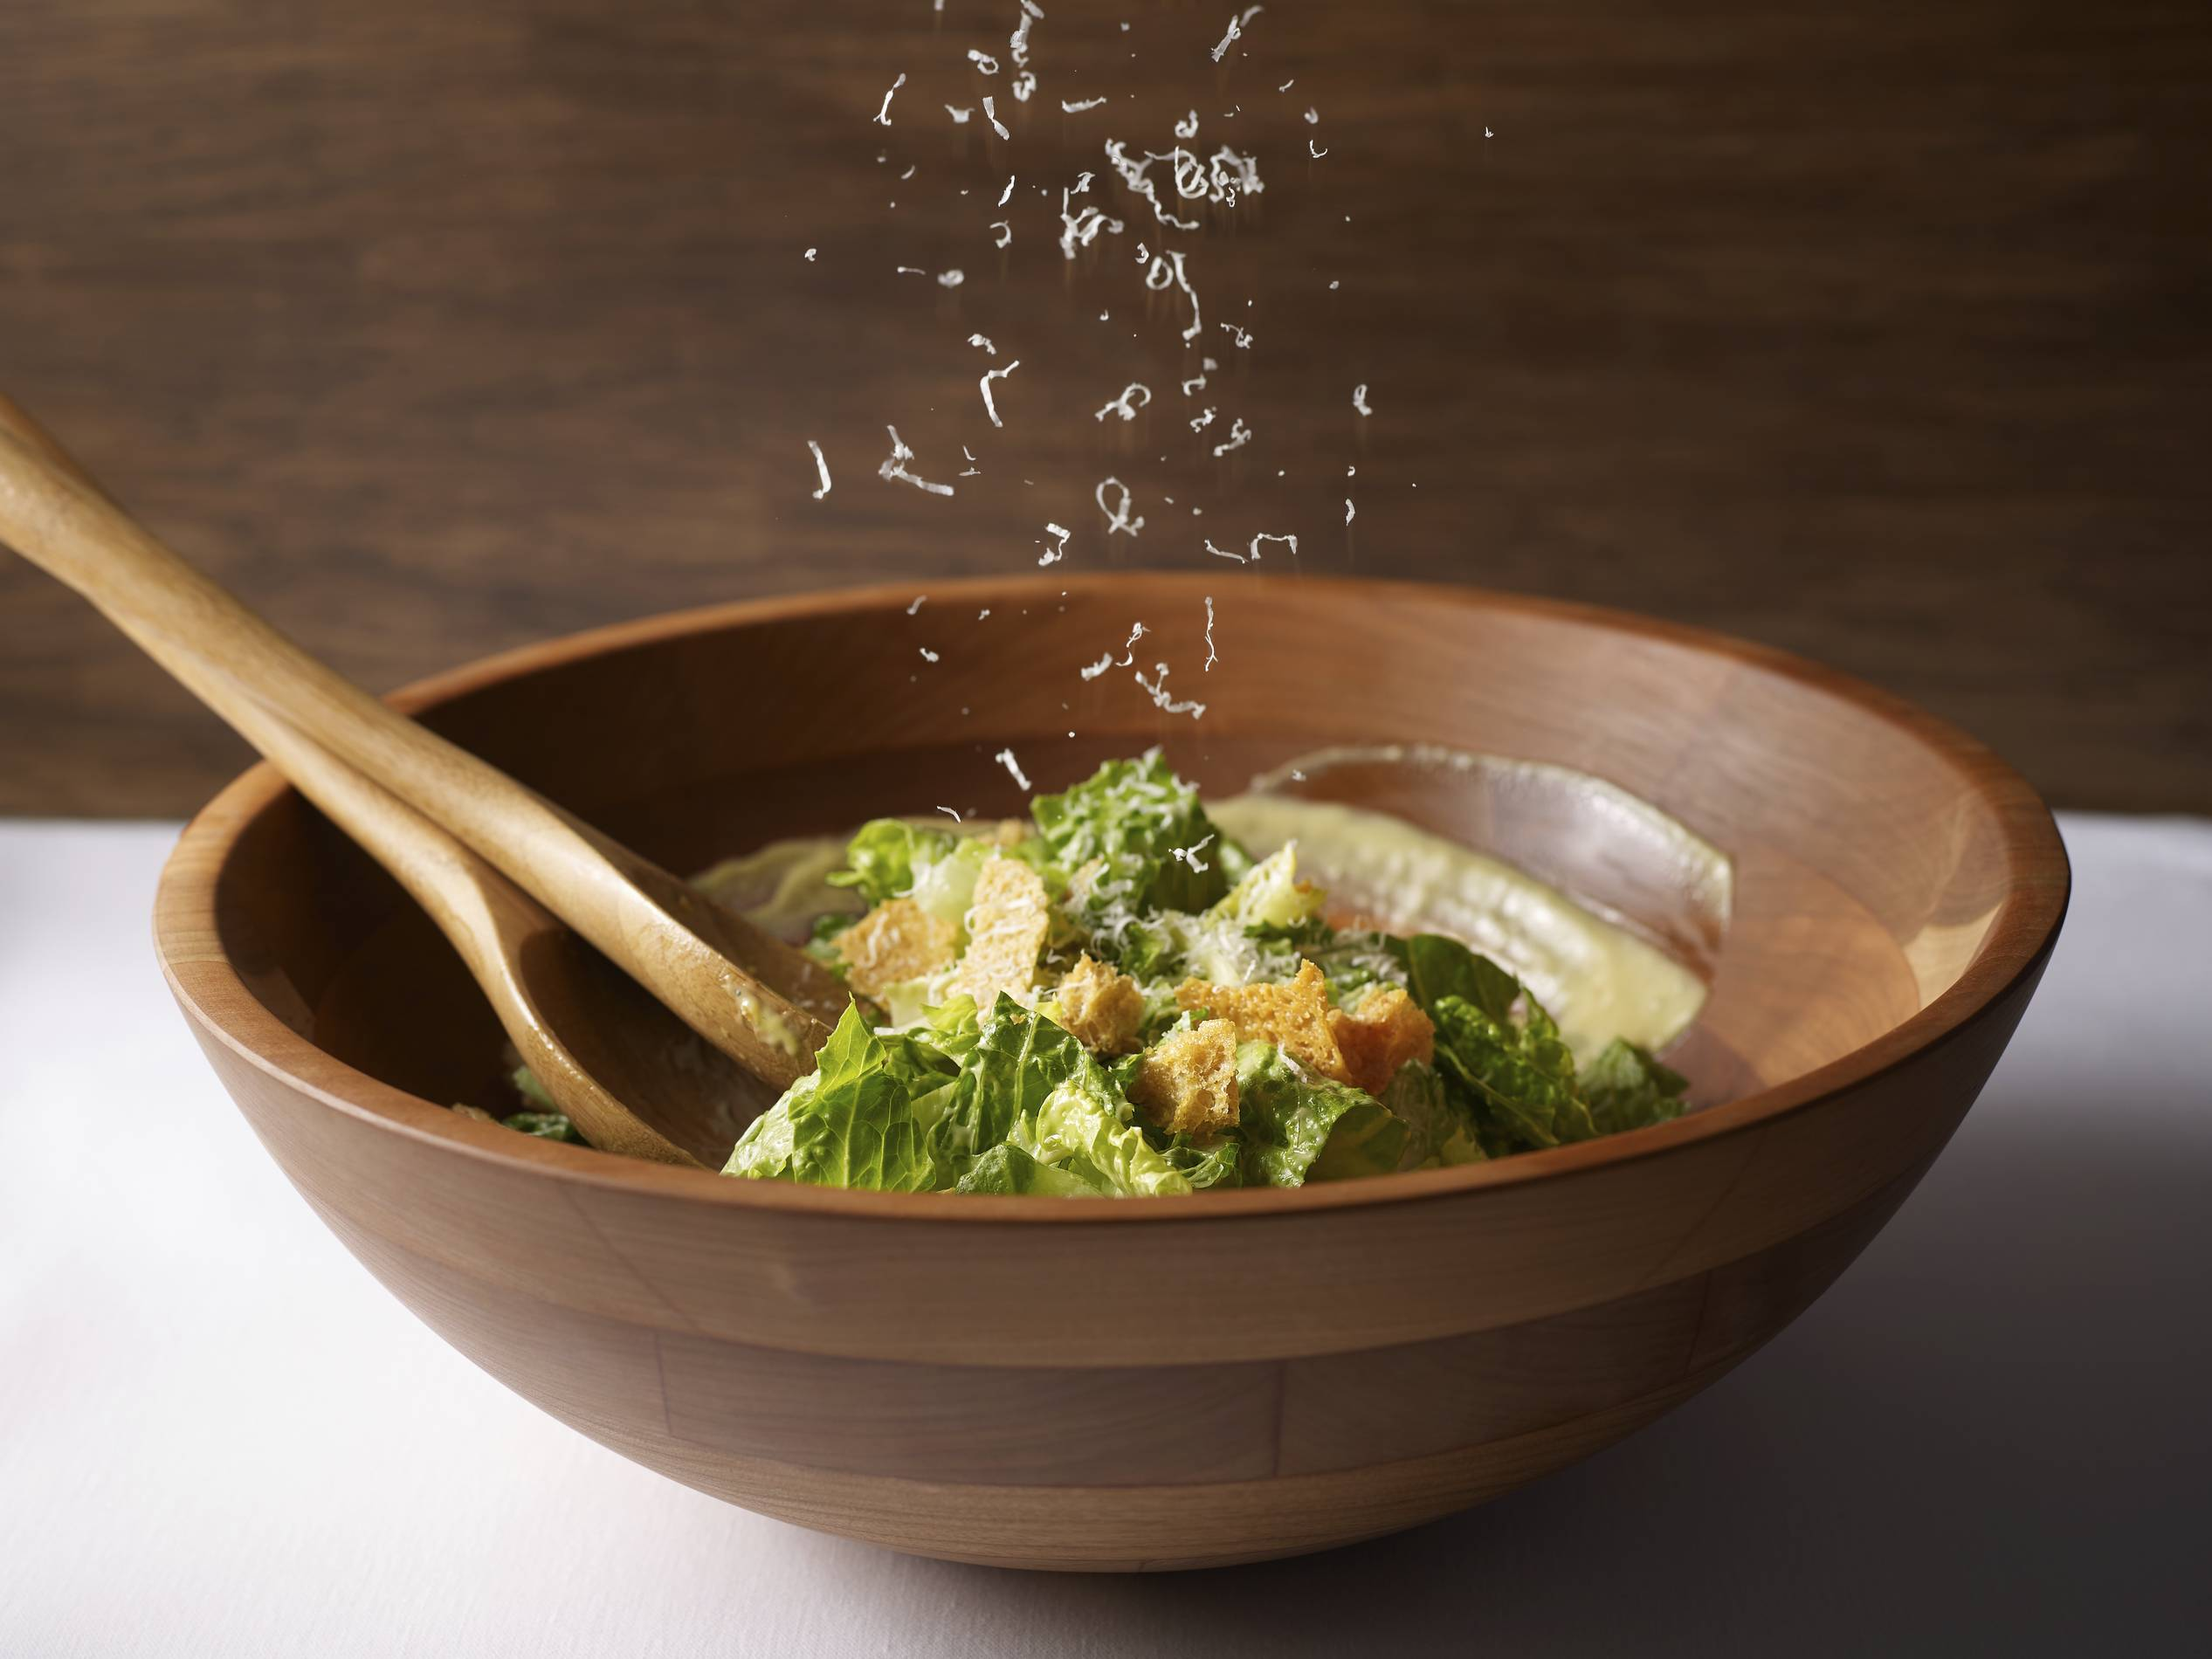 Caesar_Salad_(c)Deborah_Jones_41319.jpg